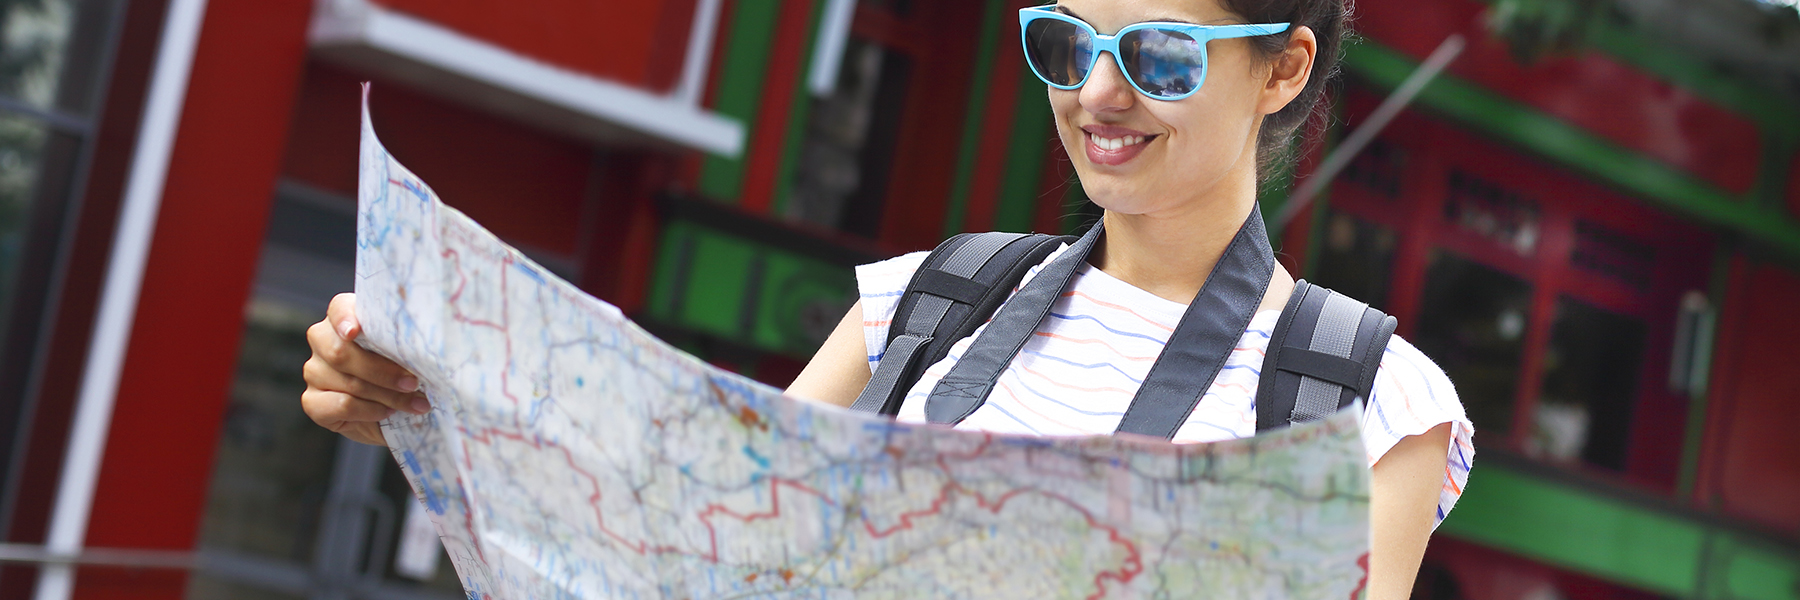 girl with sunglasses holding a map